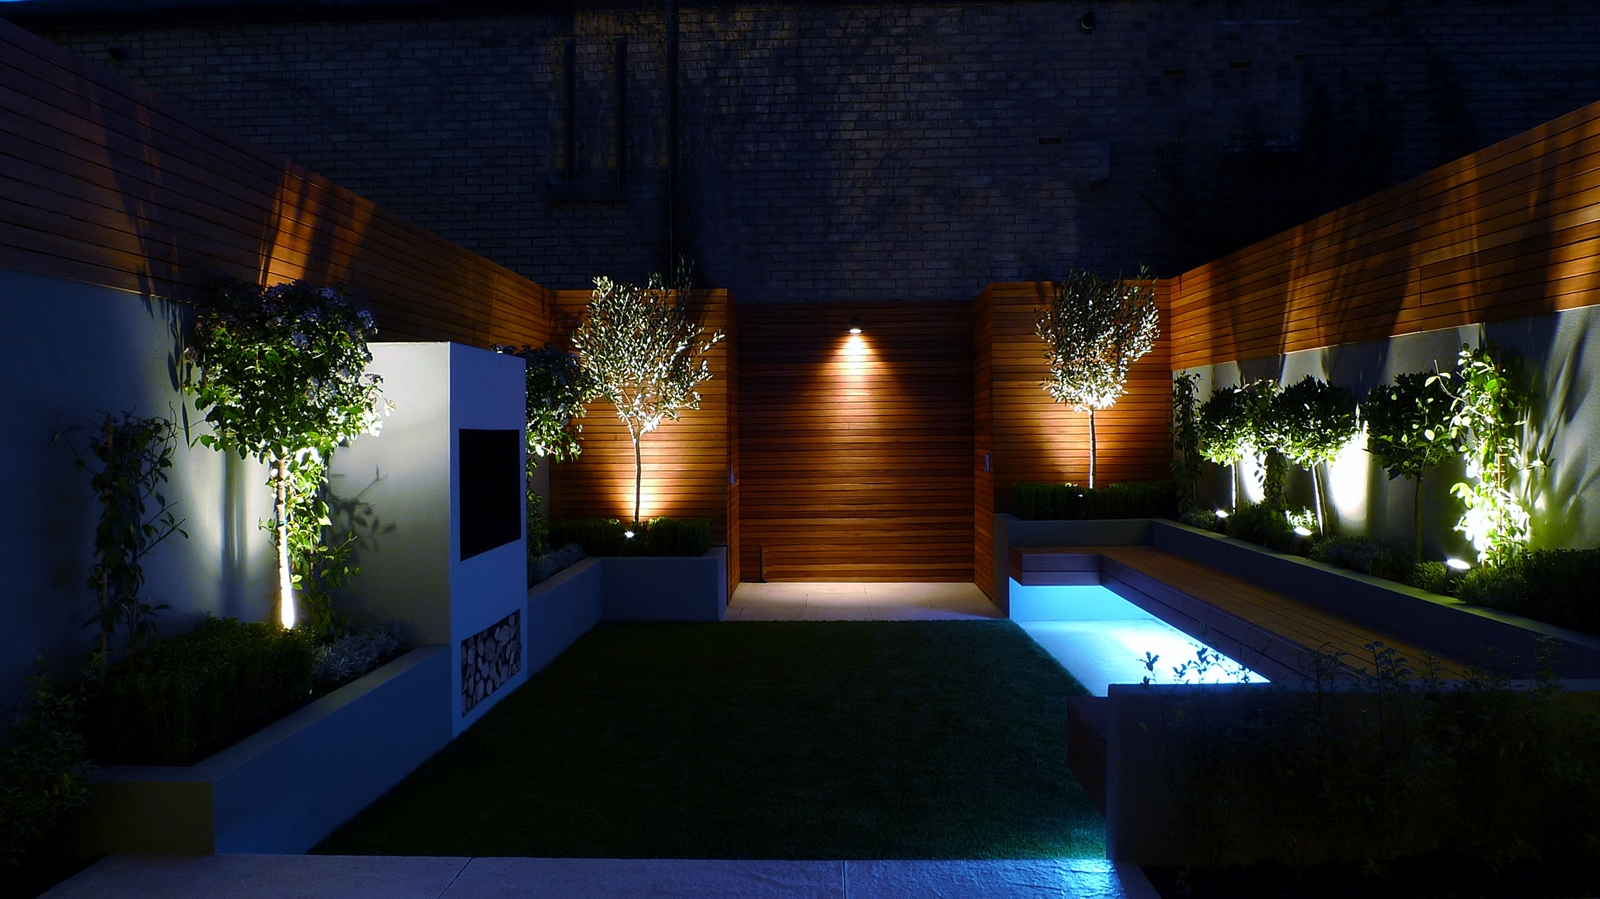 Grass london garden design part 5 for Garden lighting designs